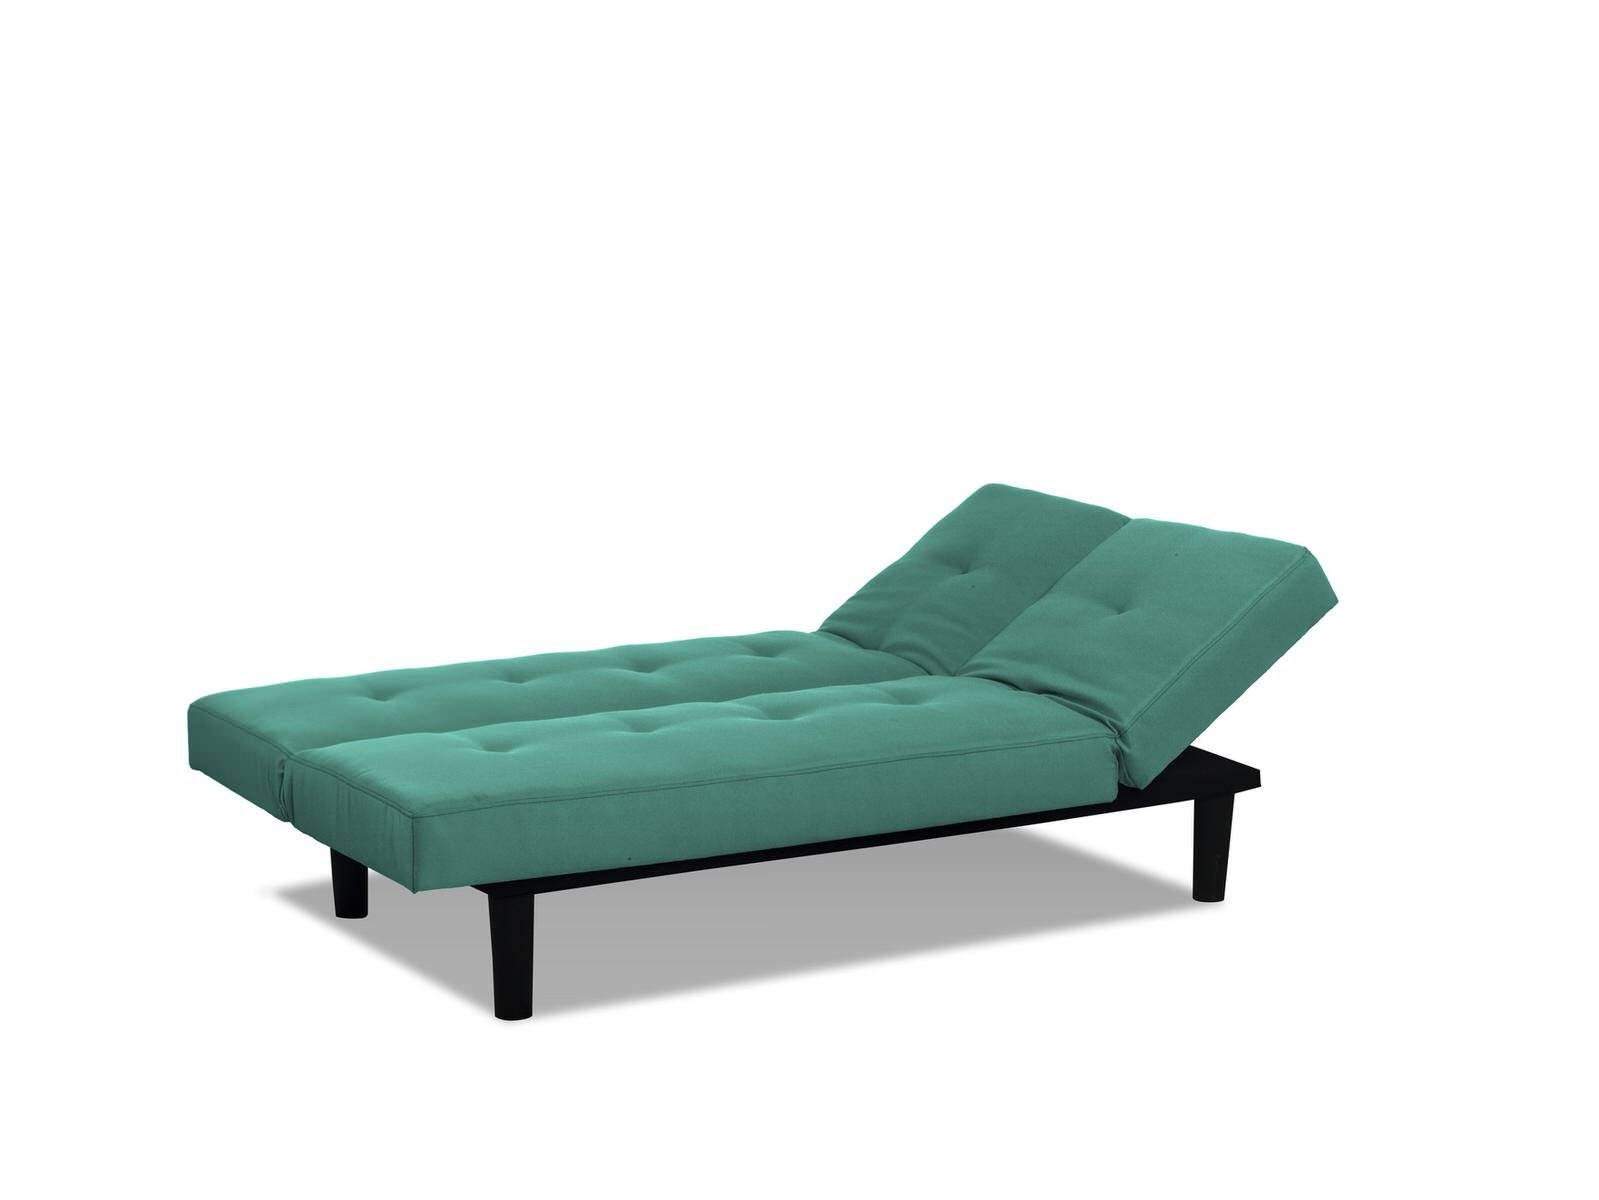 Mini Lounger Convertible Sofa Bed Tealserta / Lifestyle with regard to Mini Sofa Beds (Image 16 of 30)